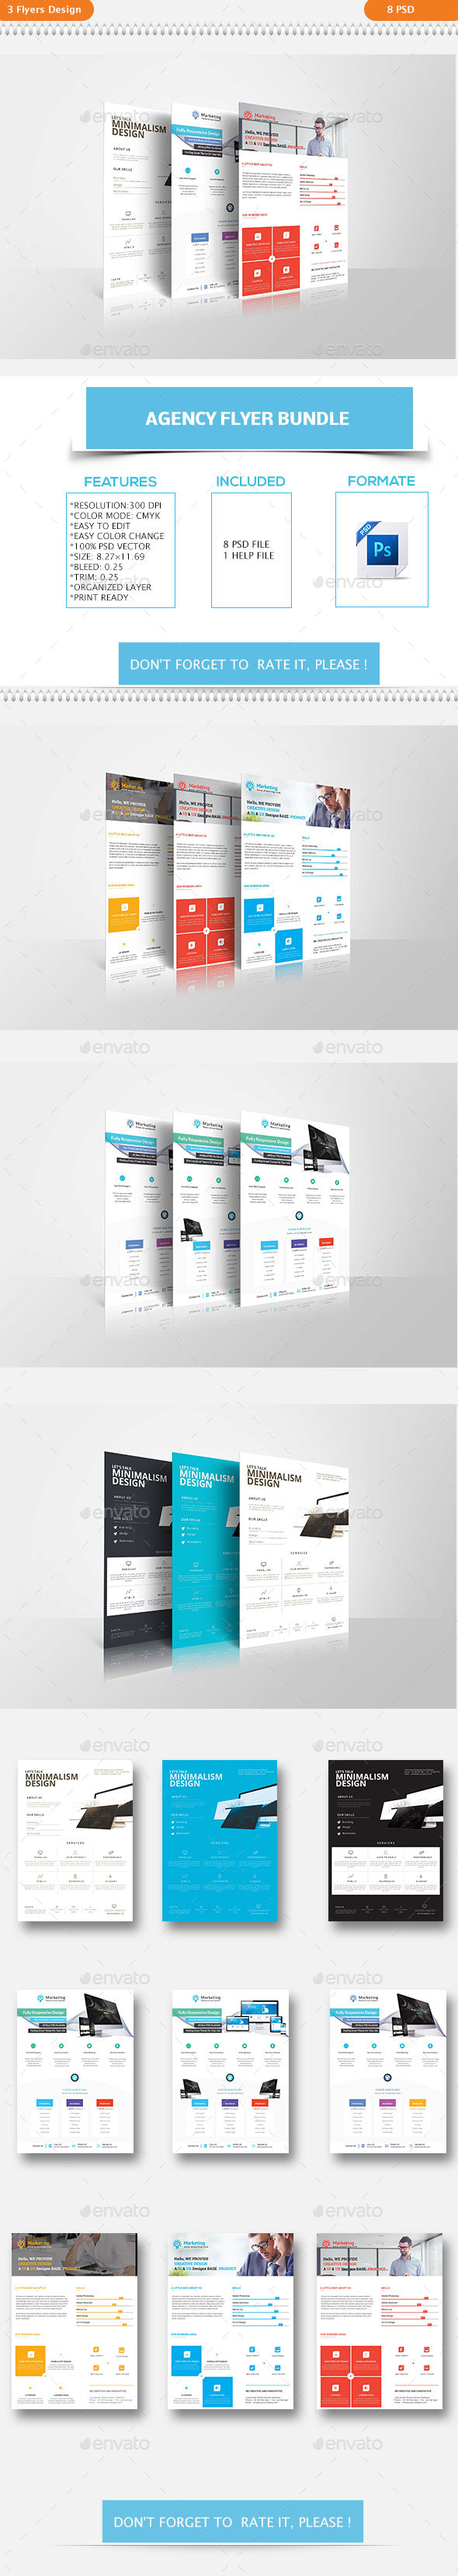 Corporate Agency Flyer Bundle - Flyers Print Templates